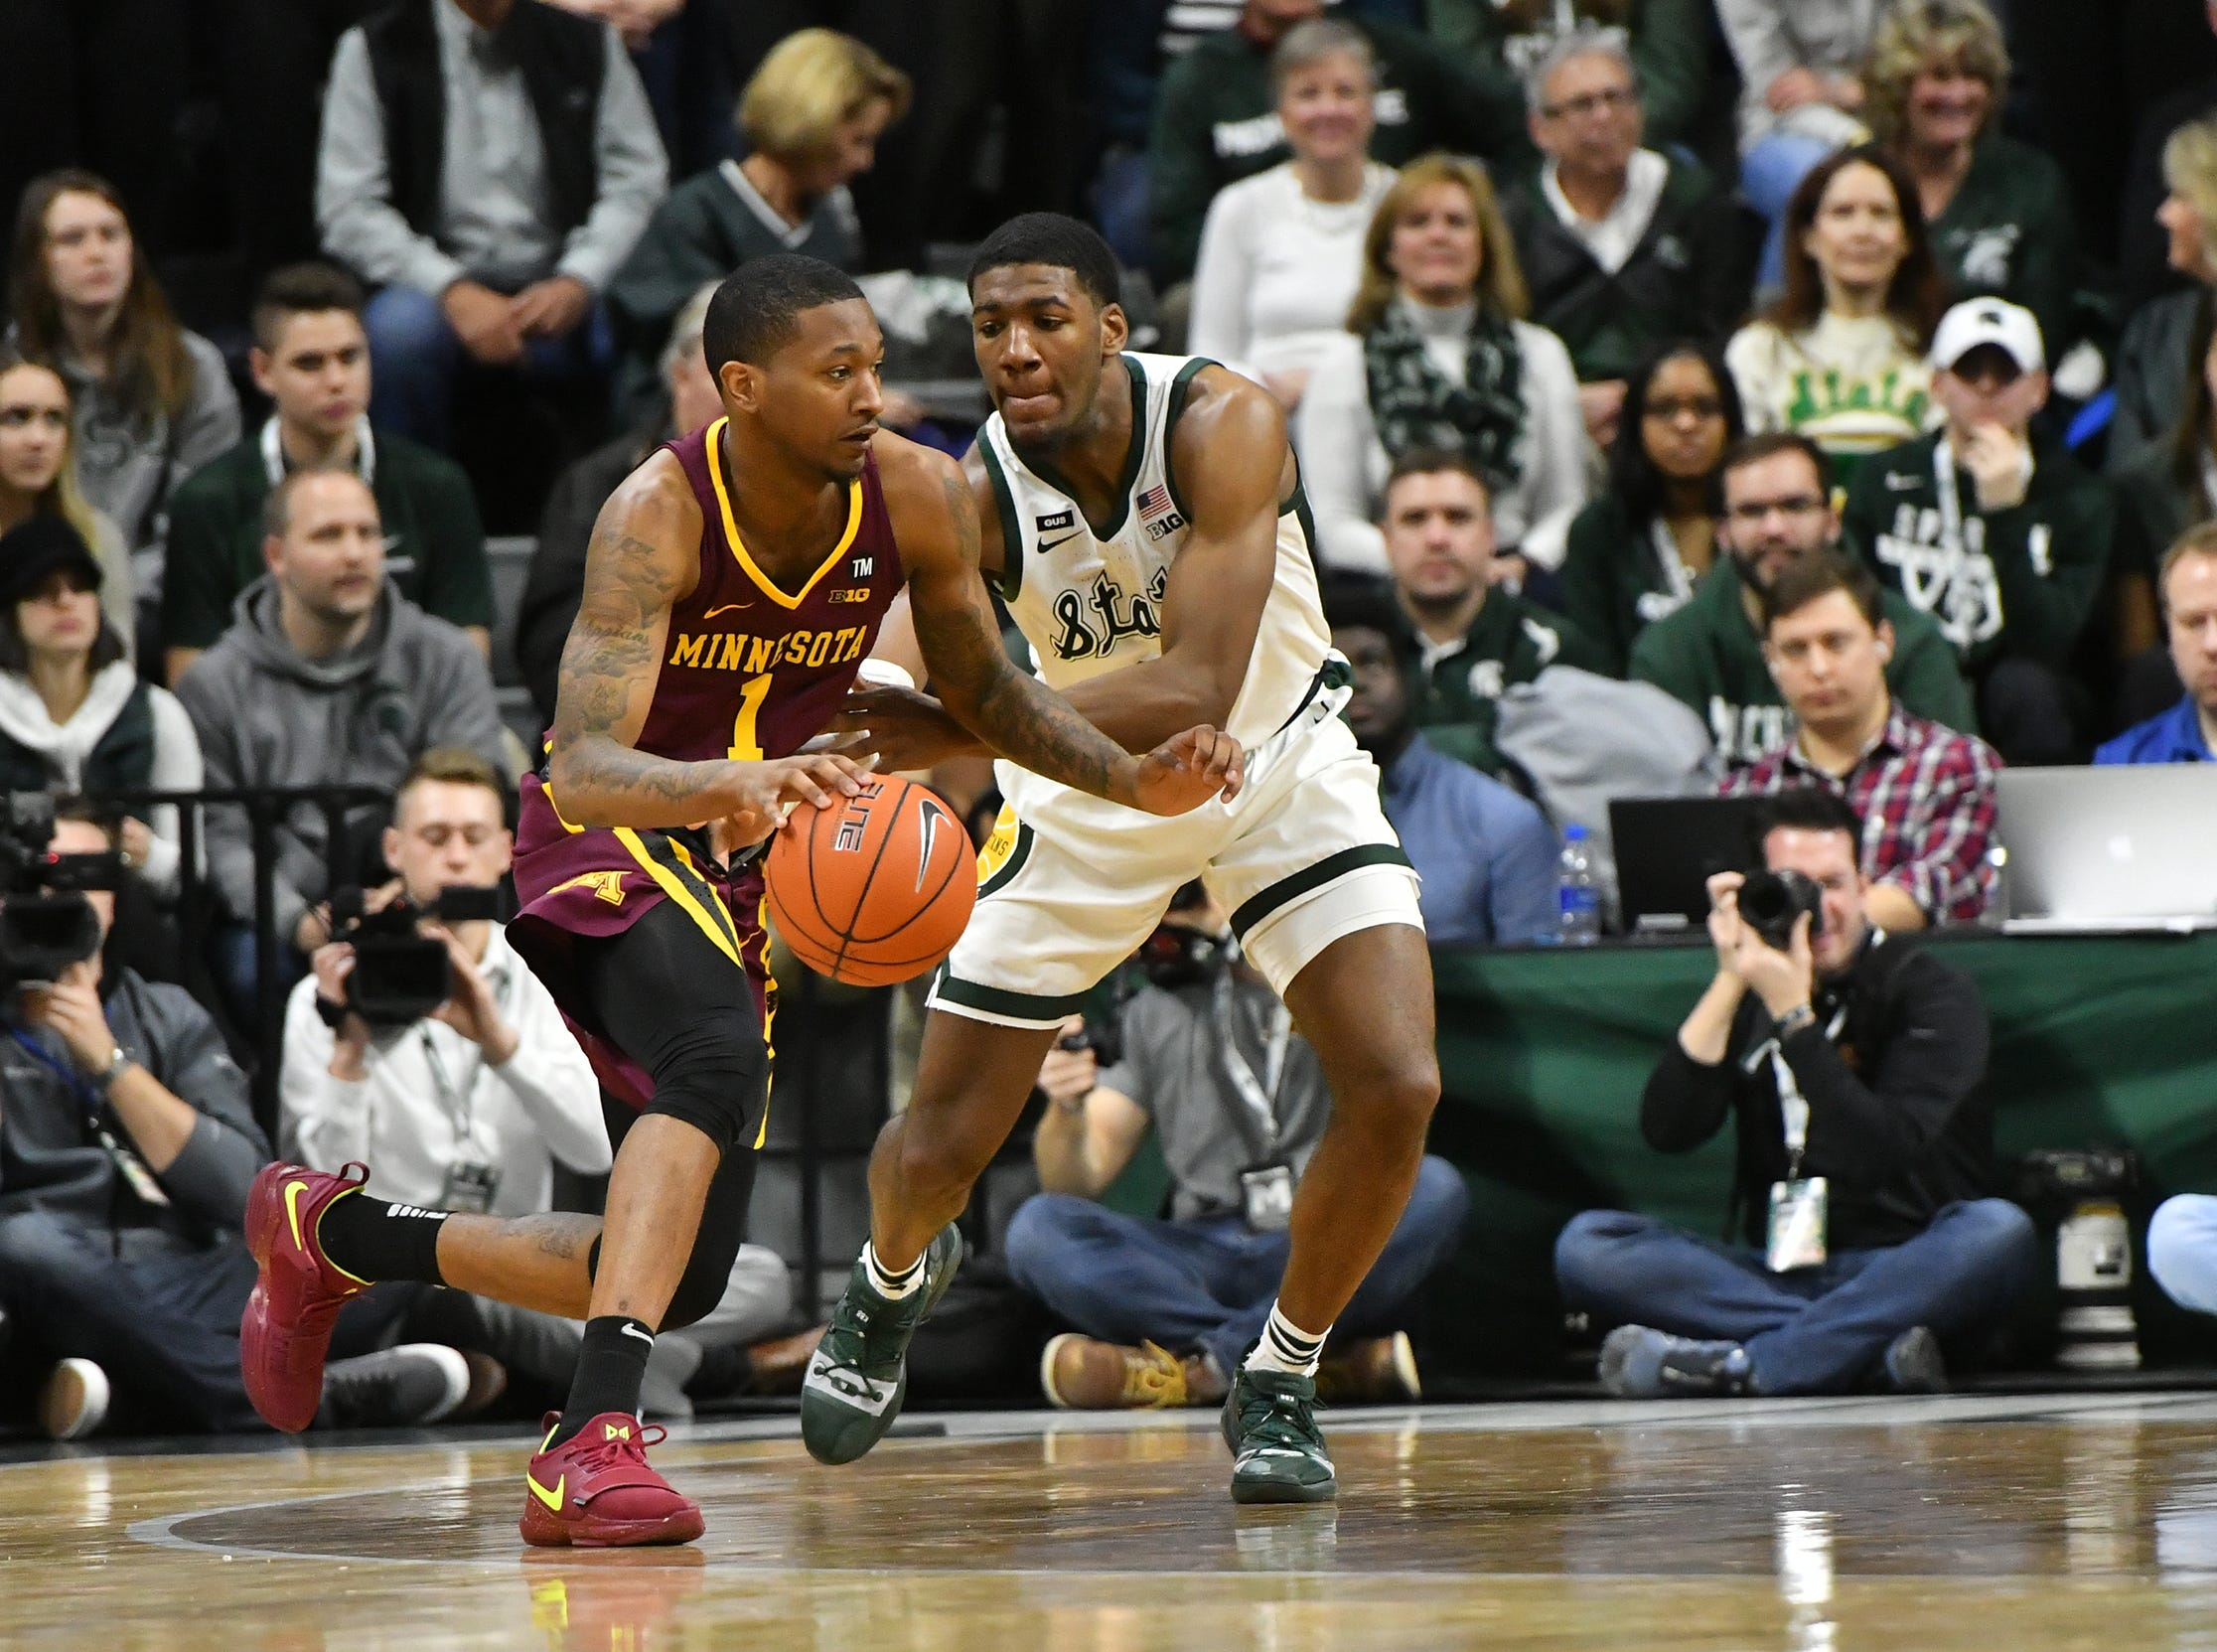 MSU forward Aaron Henry (11) guards Minnesota's Dupree Mc Brayer (1) in a Big Ten match-up Saturday, Feb. 9, 2019. MSU won 79-55.